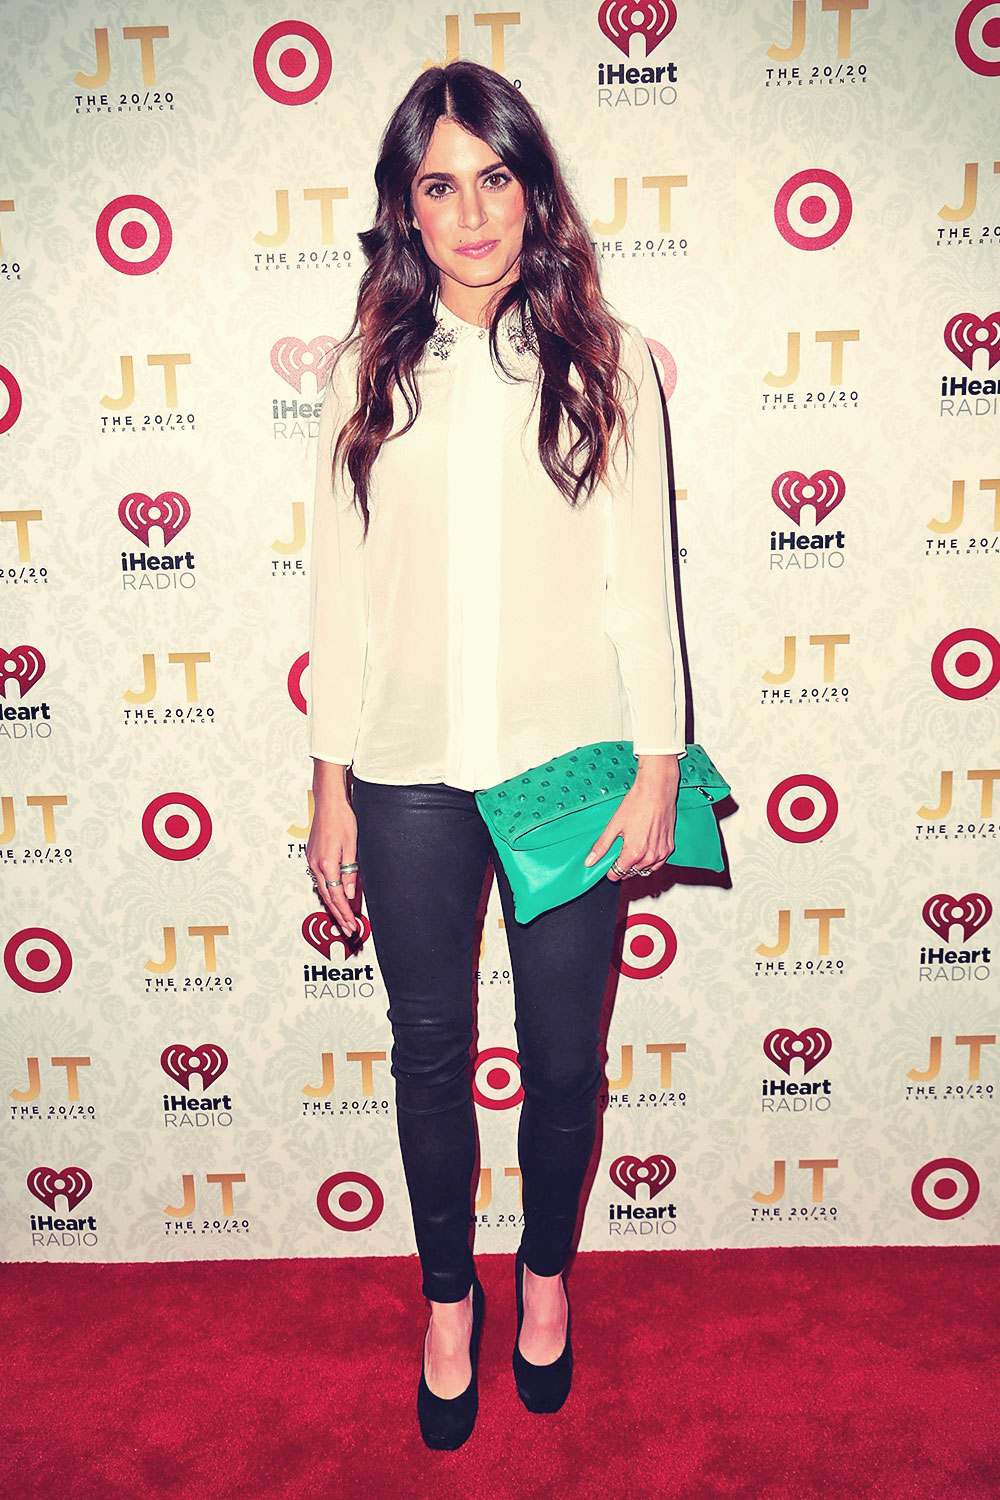 Nikki Reed attends the iHeartRadio 2020 album release party